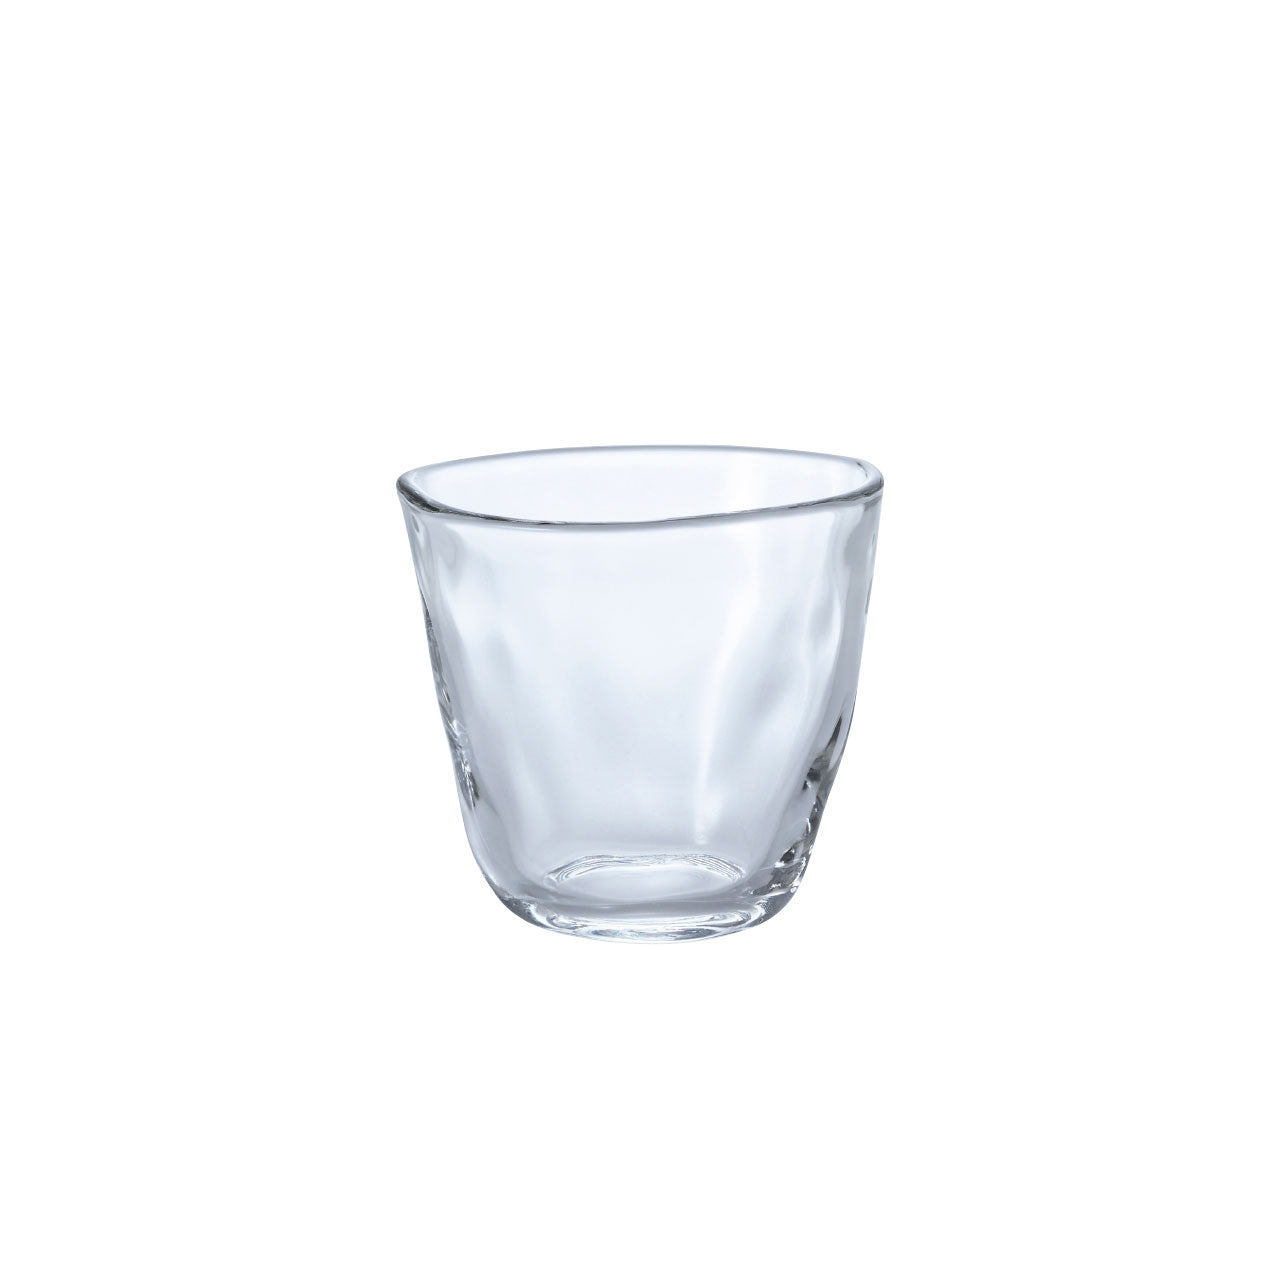 Organic Shaped Glass Cup 6 fl oz